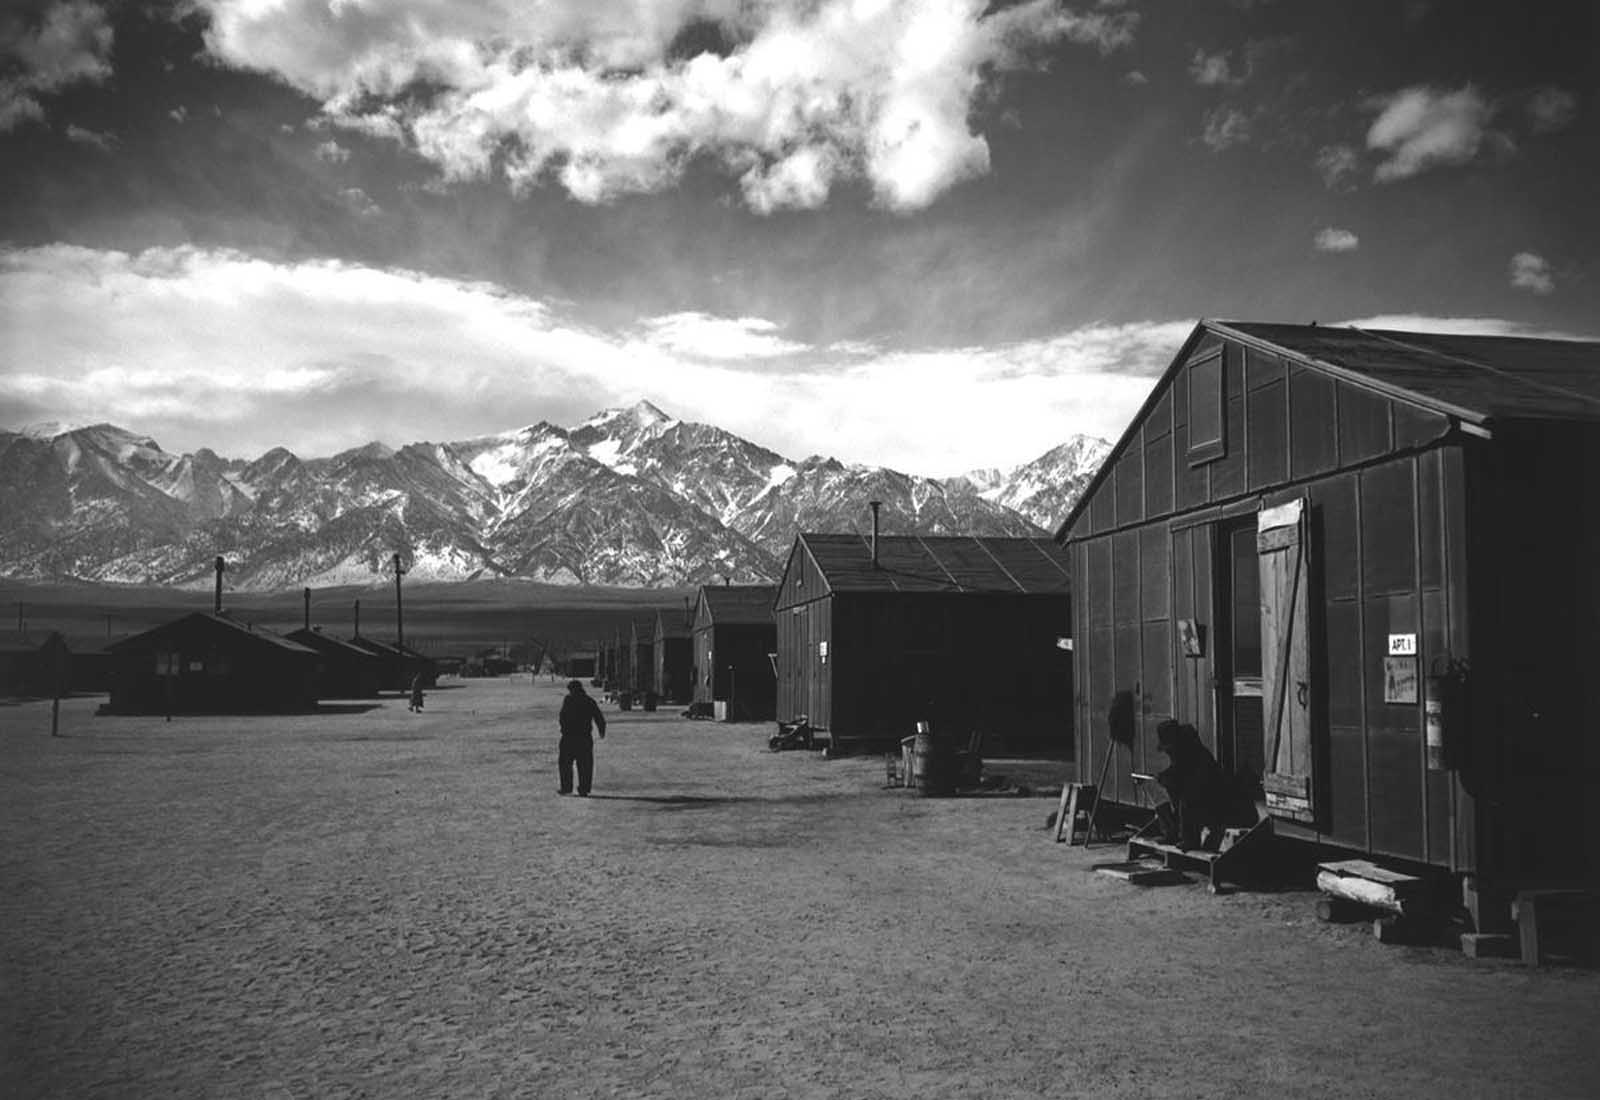 A street scene at the Manzanar Relocation Center, winter, 1943.